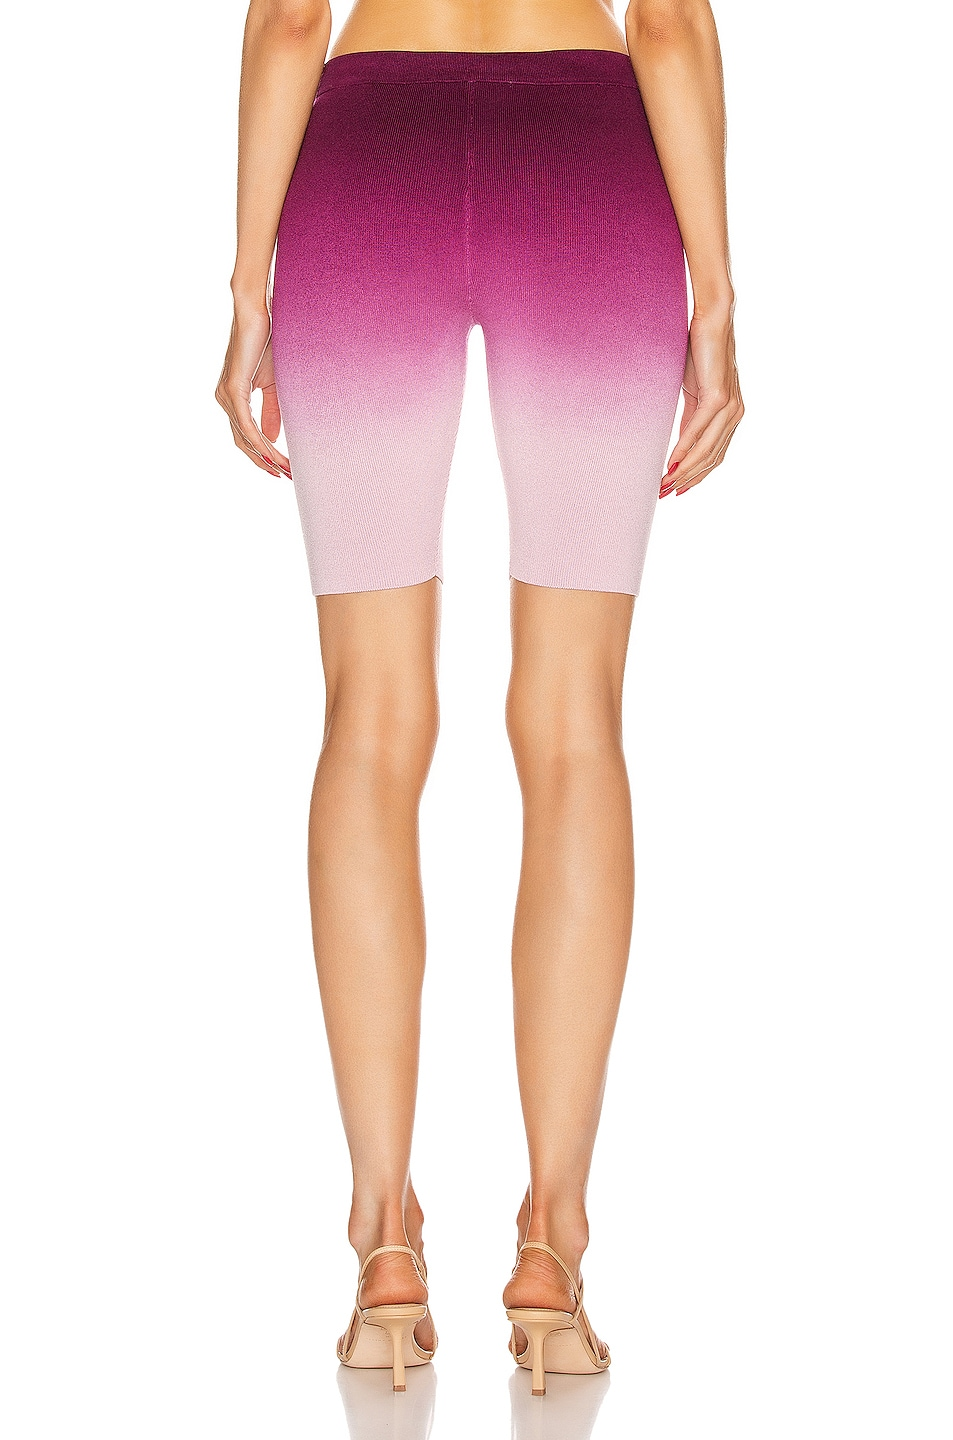 Image 3 of JONATHAN SIMKHAI Ombre Compact Knit Biker Short in Magenta Ombre